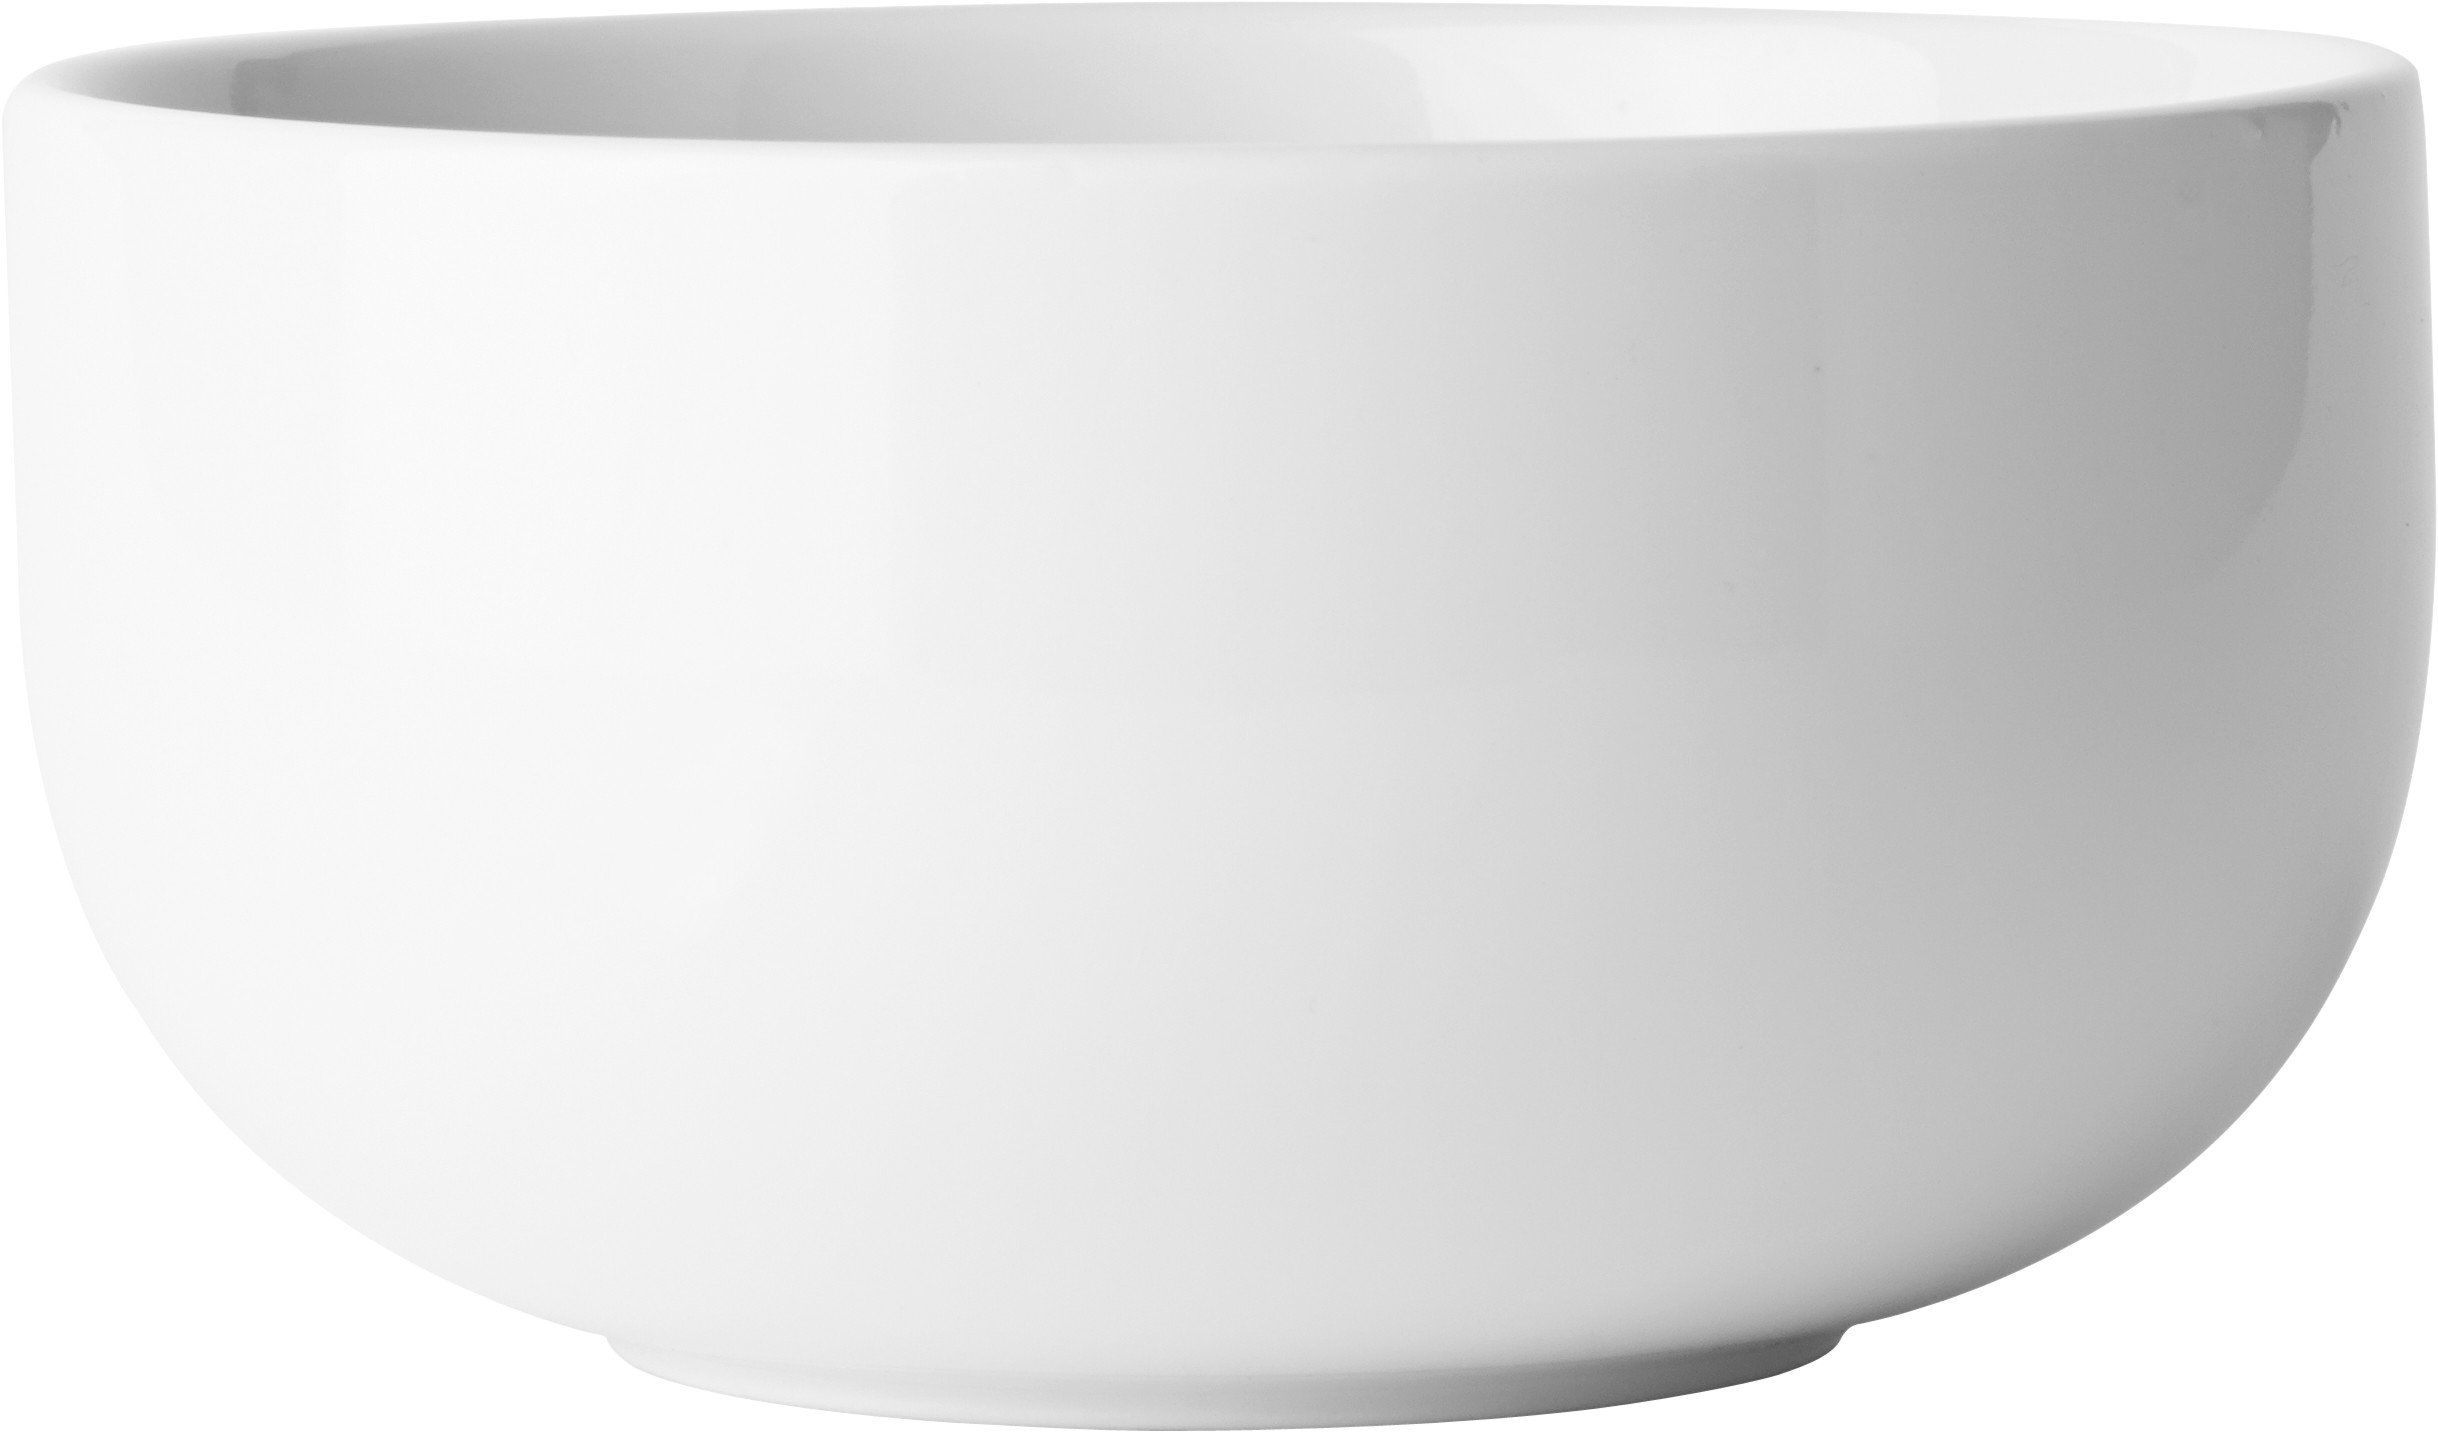 New Norm Bowl White, Ø 10cm by Norm Architects for Menu